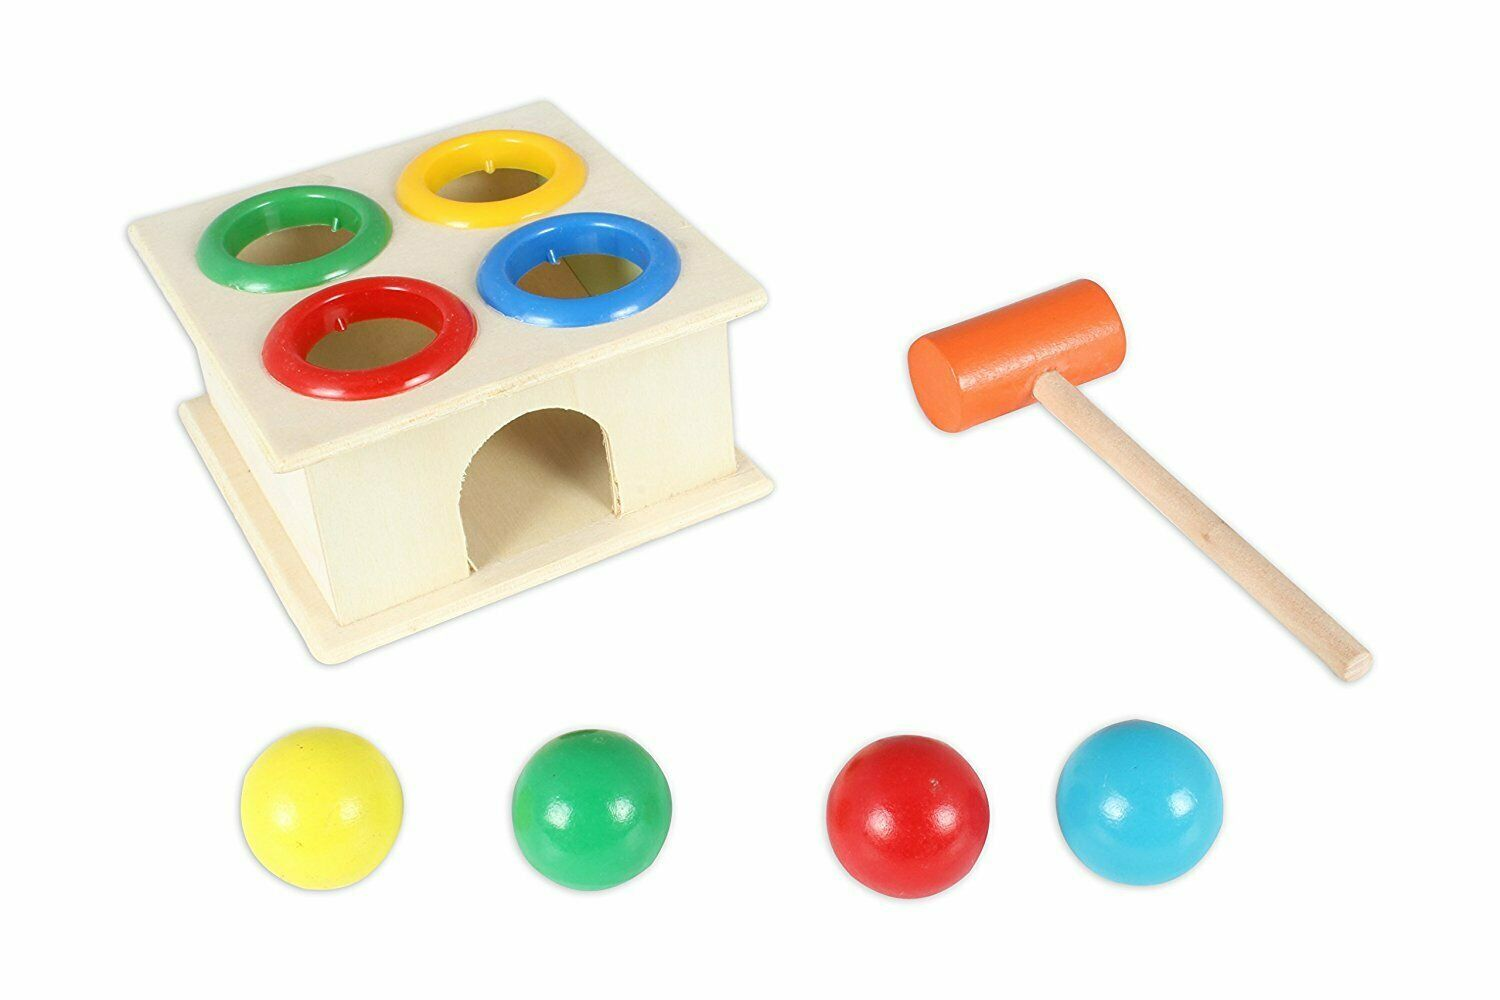 Wooden Hammer Case Case Case Toy For Kids (30 x 1.5 x 22 CM) Interactive Learning Toy Set 2050bb